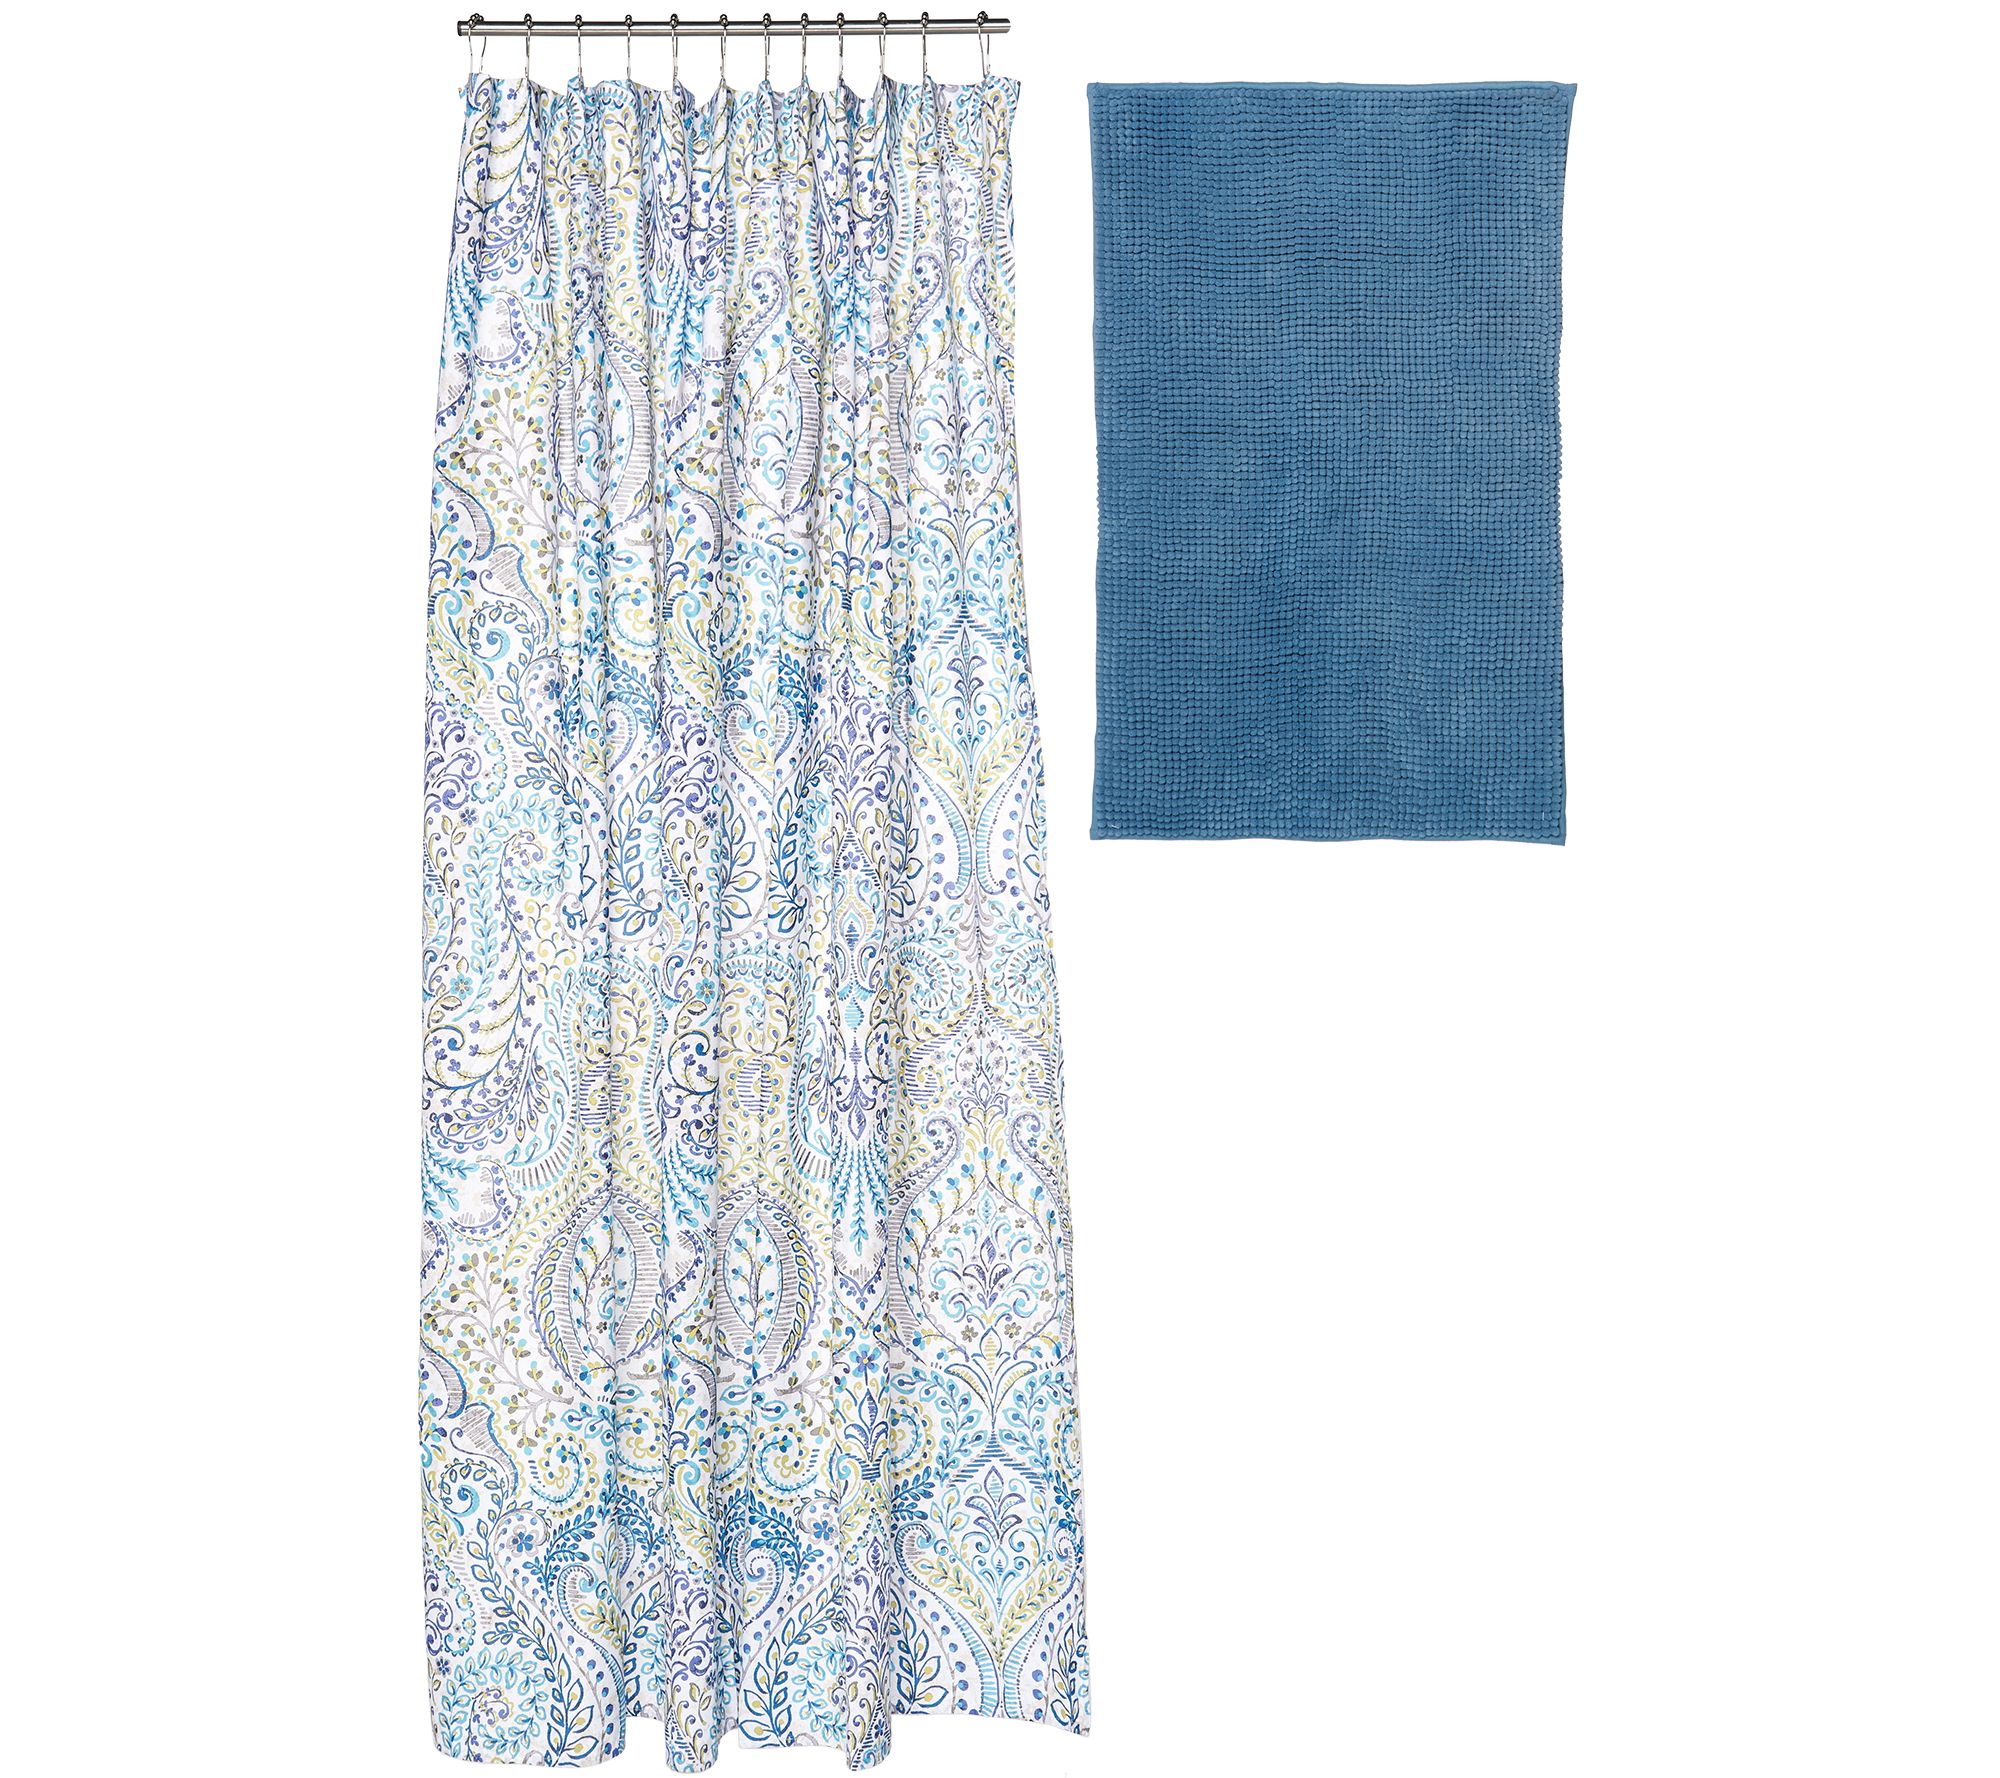 modern bath set with bath rug shower curtain and twelve hooks page 1 u2014 qvccom